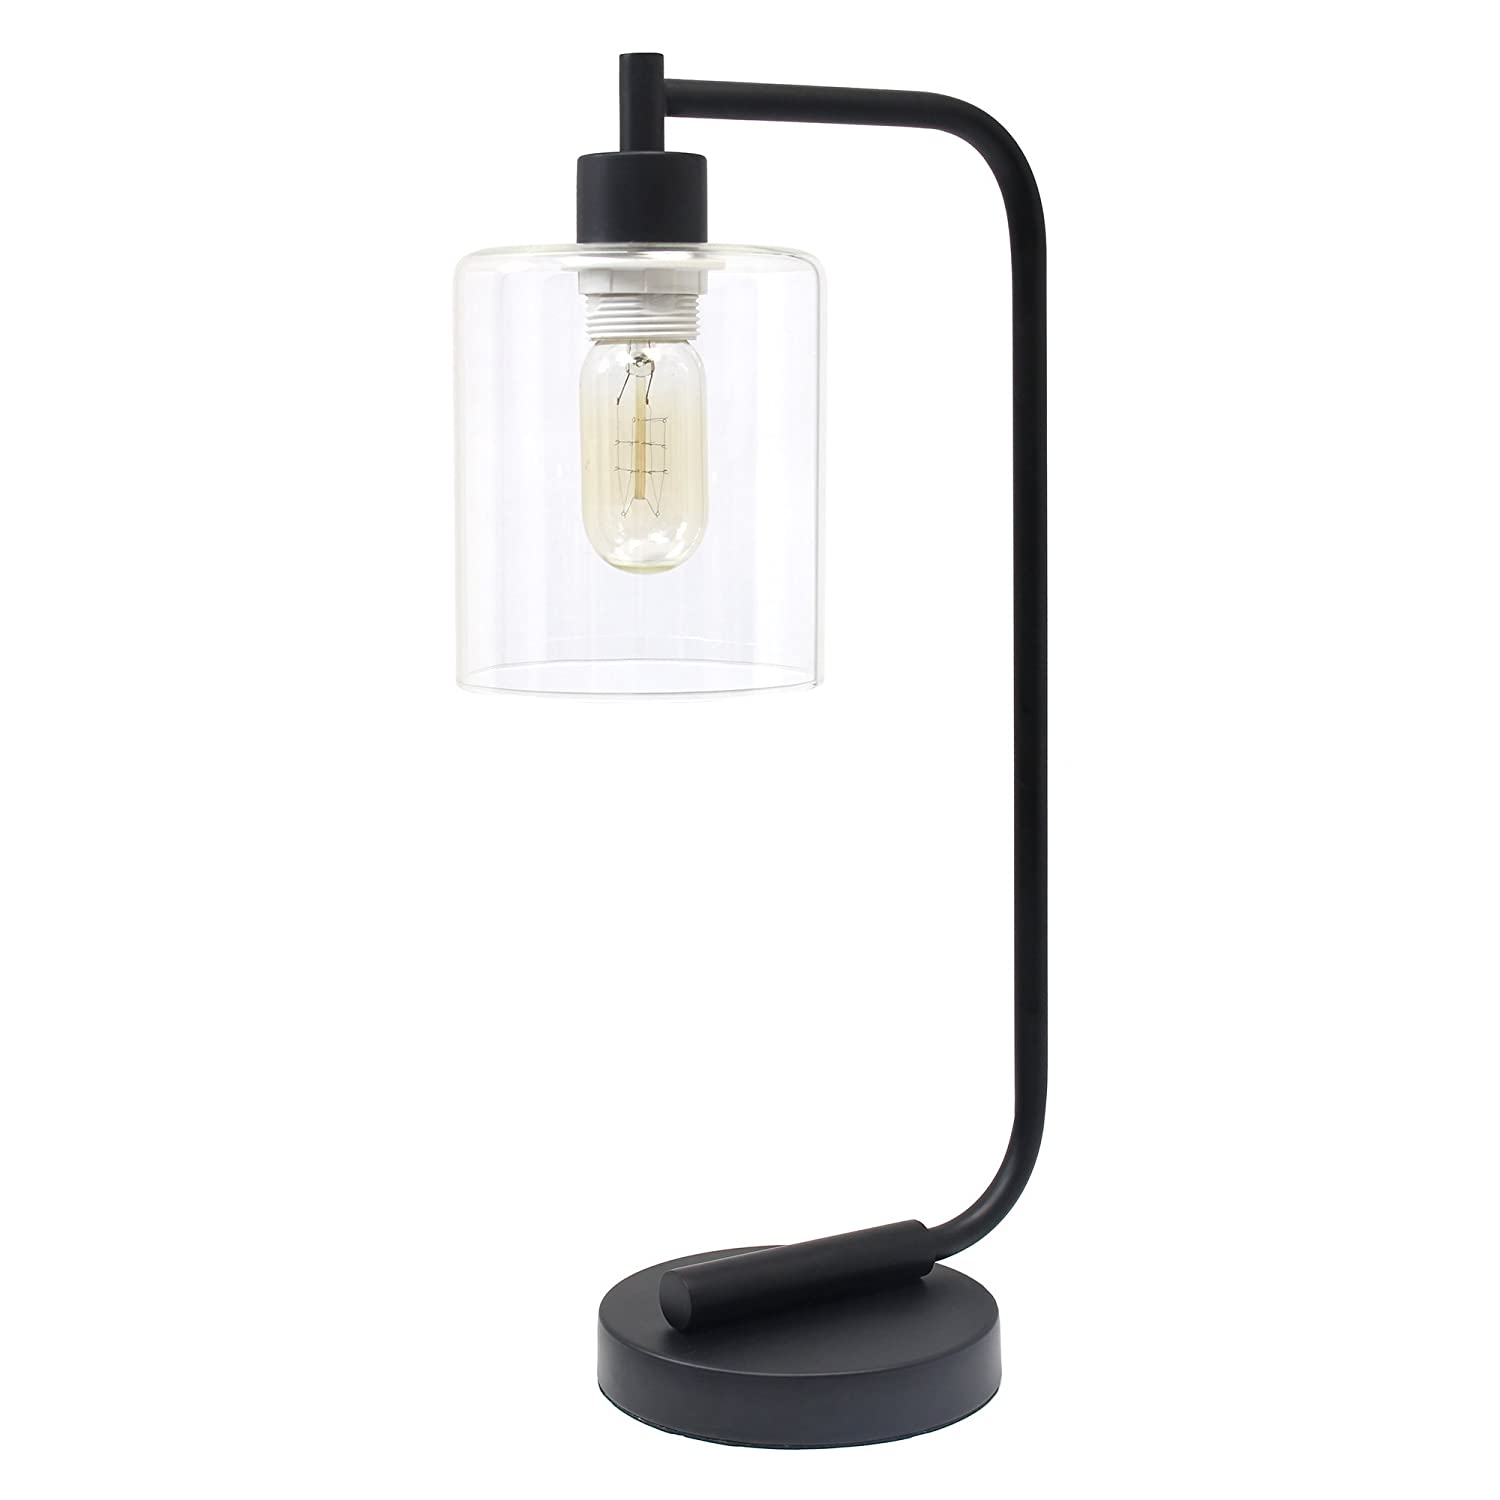 "Simple Designs LD1036-BLK Industrial Iron Desk Lantern Lamp 3.5"" Black"